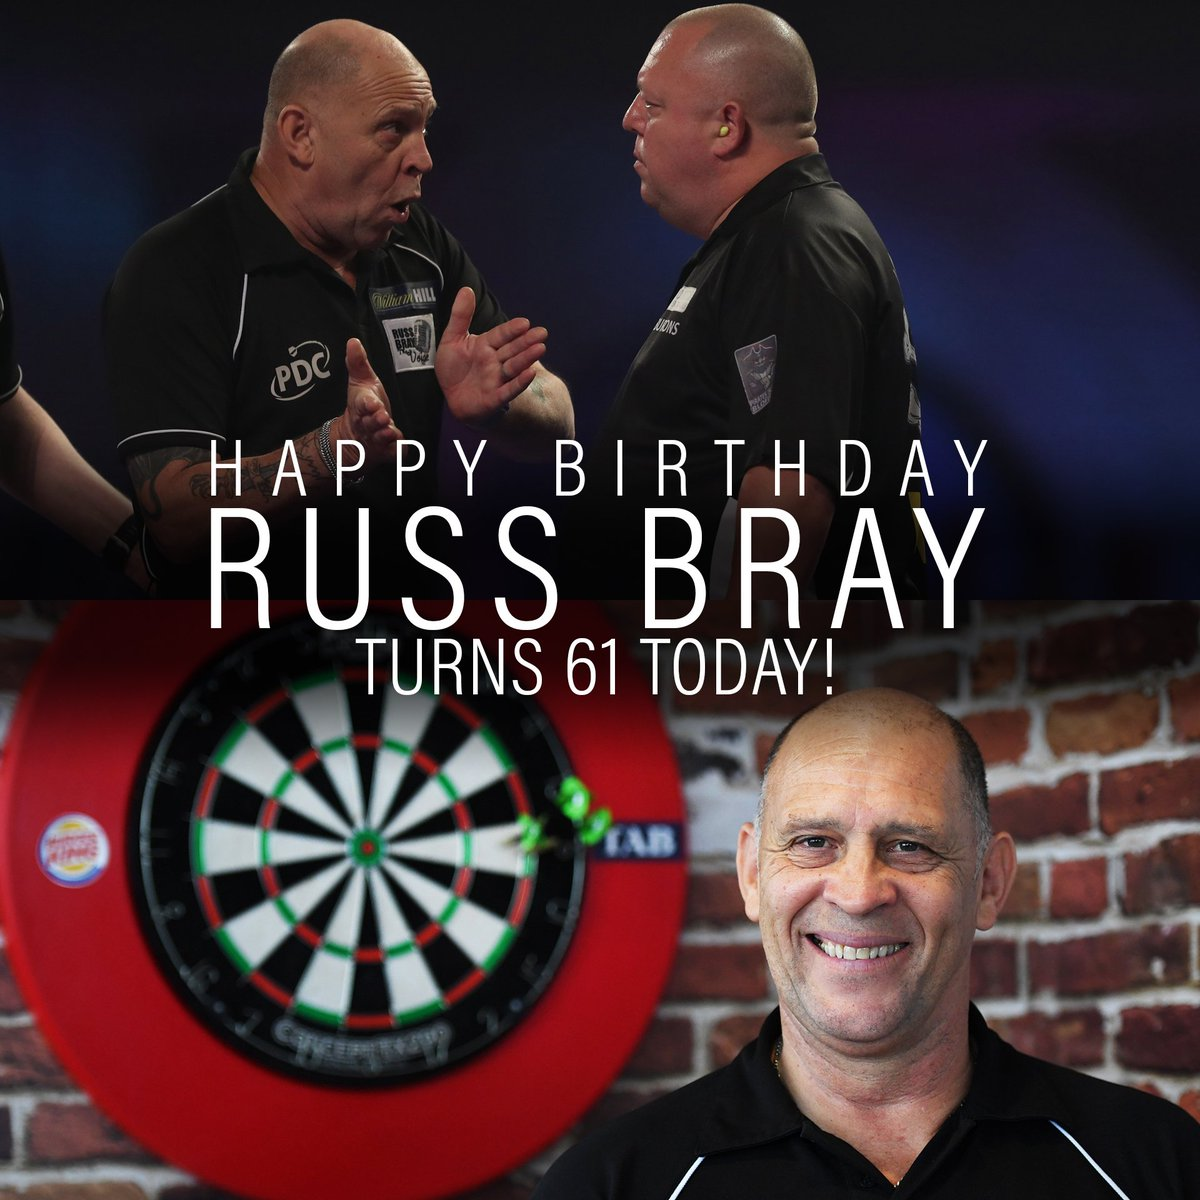 HAPPY BIRTHDAY to The Voice @Russ180, who turns 61 today! 🎂🎉🎈